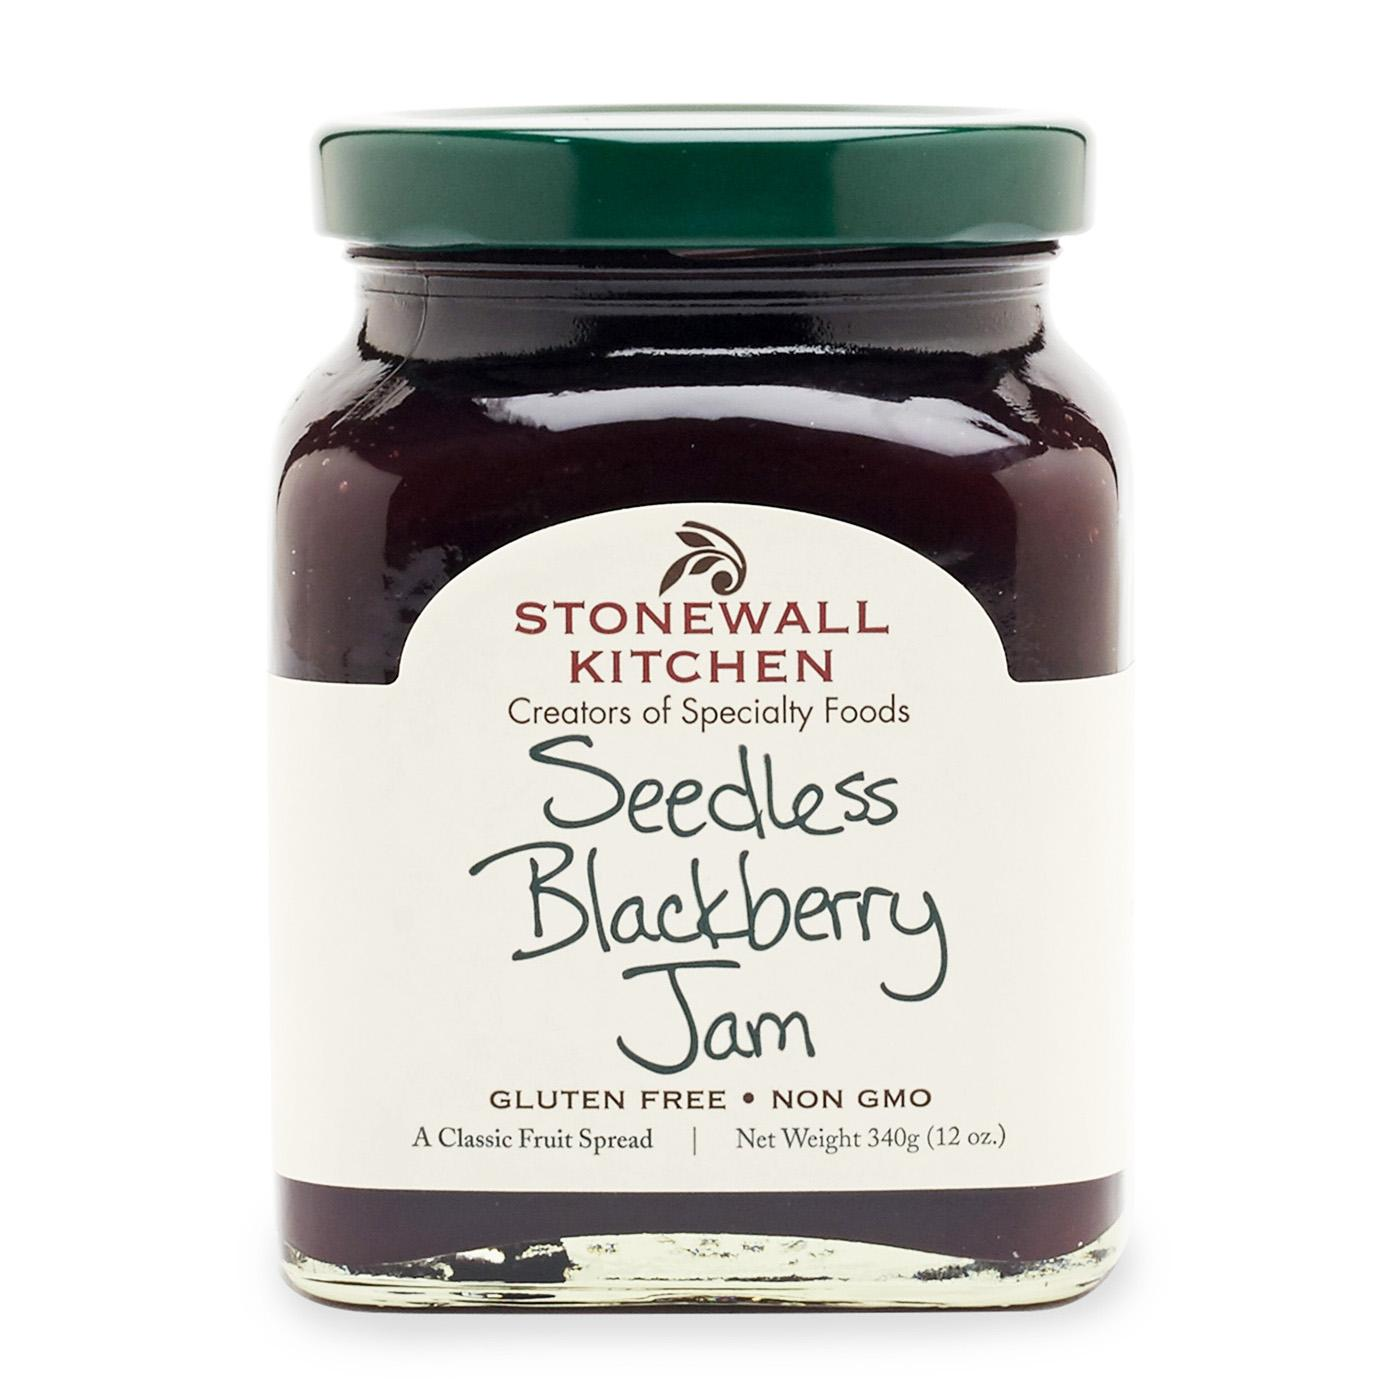 jar of Stonewall Kitchen Seedless Blackberry jam 12 oz. glass made in Maine